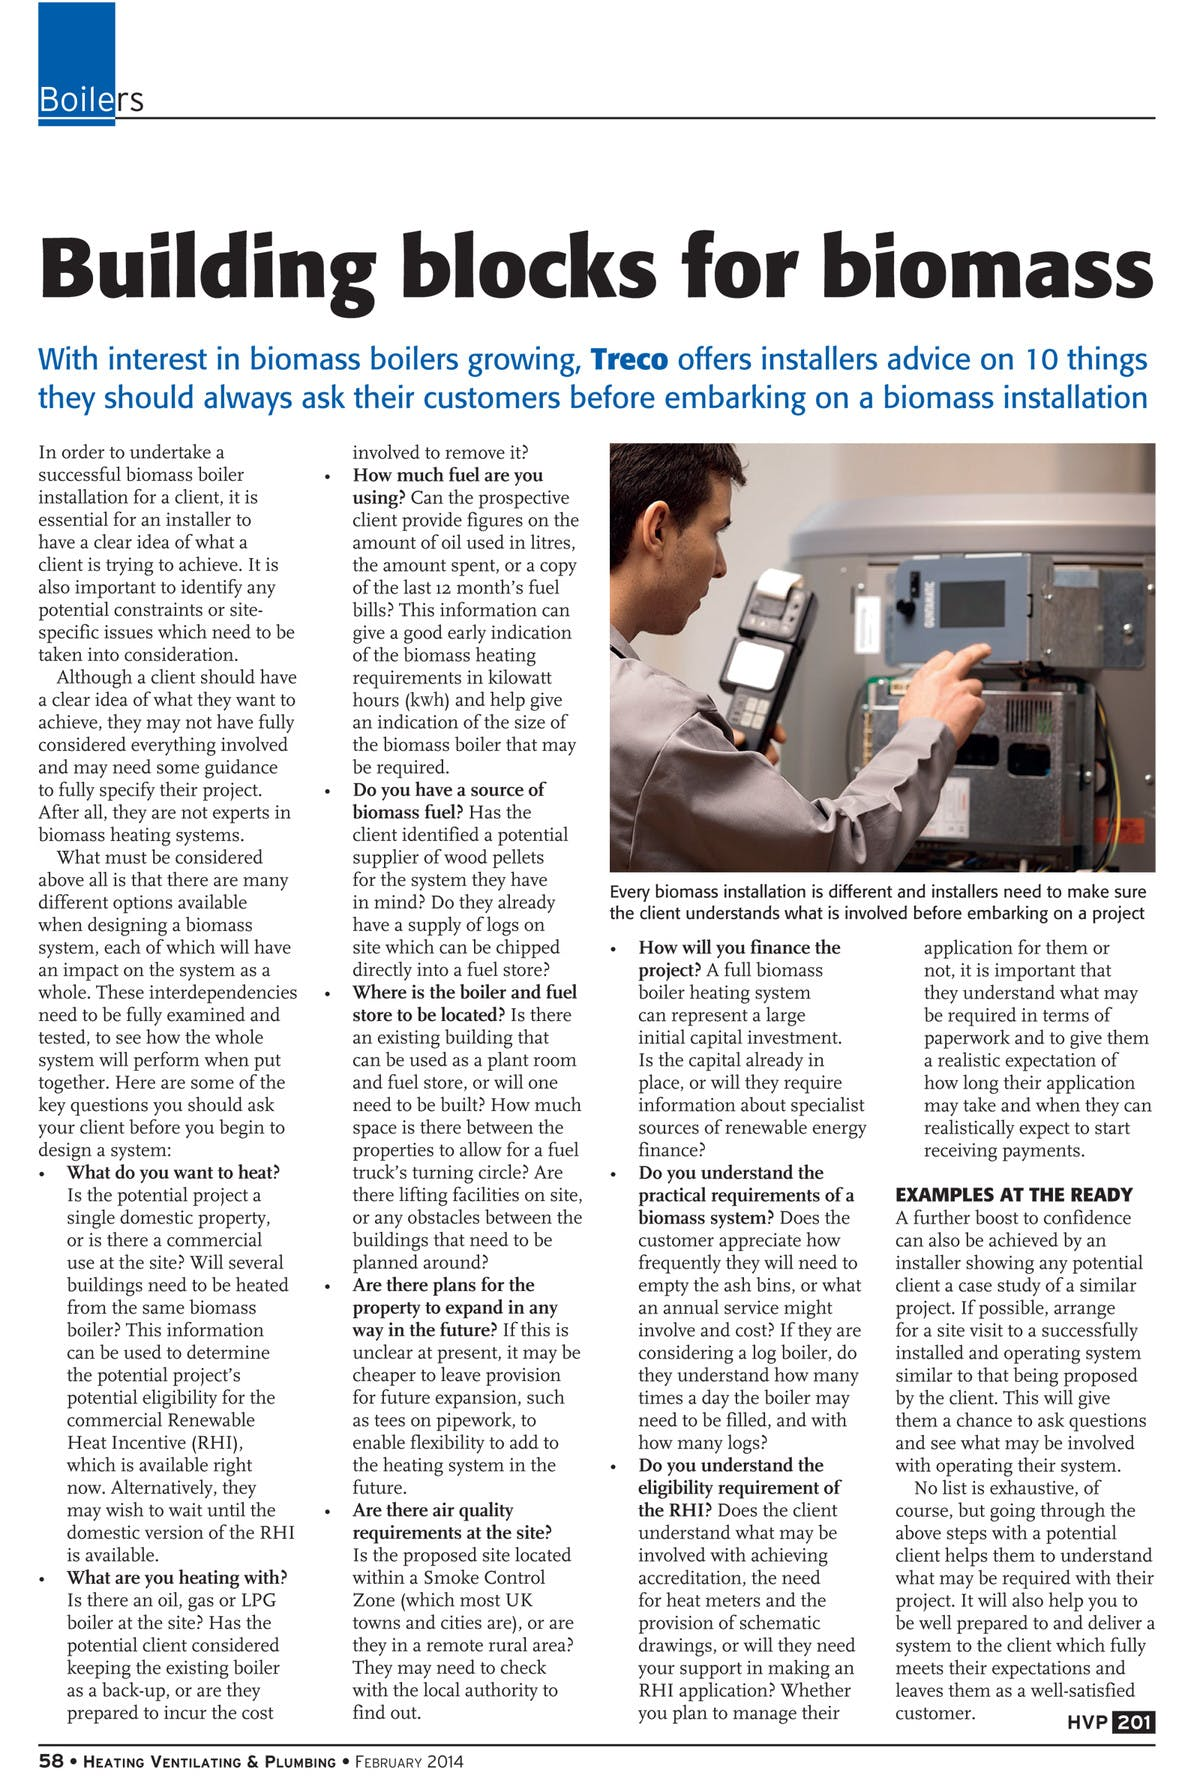 HVP Magazine - 10 things installers should ask before a biomass installation